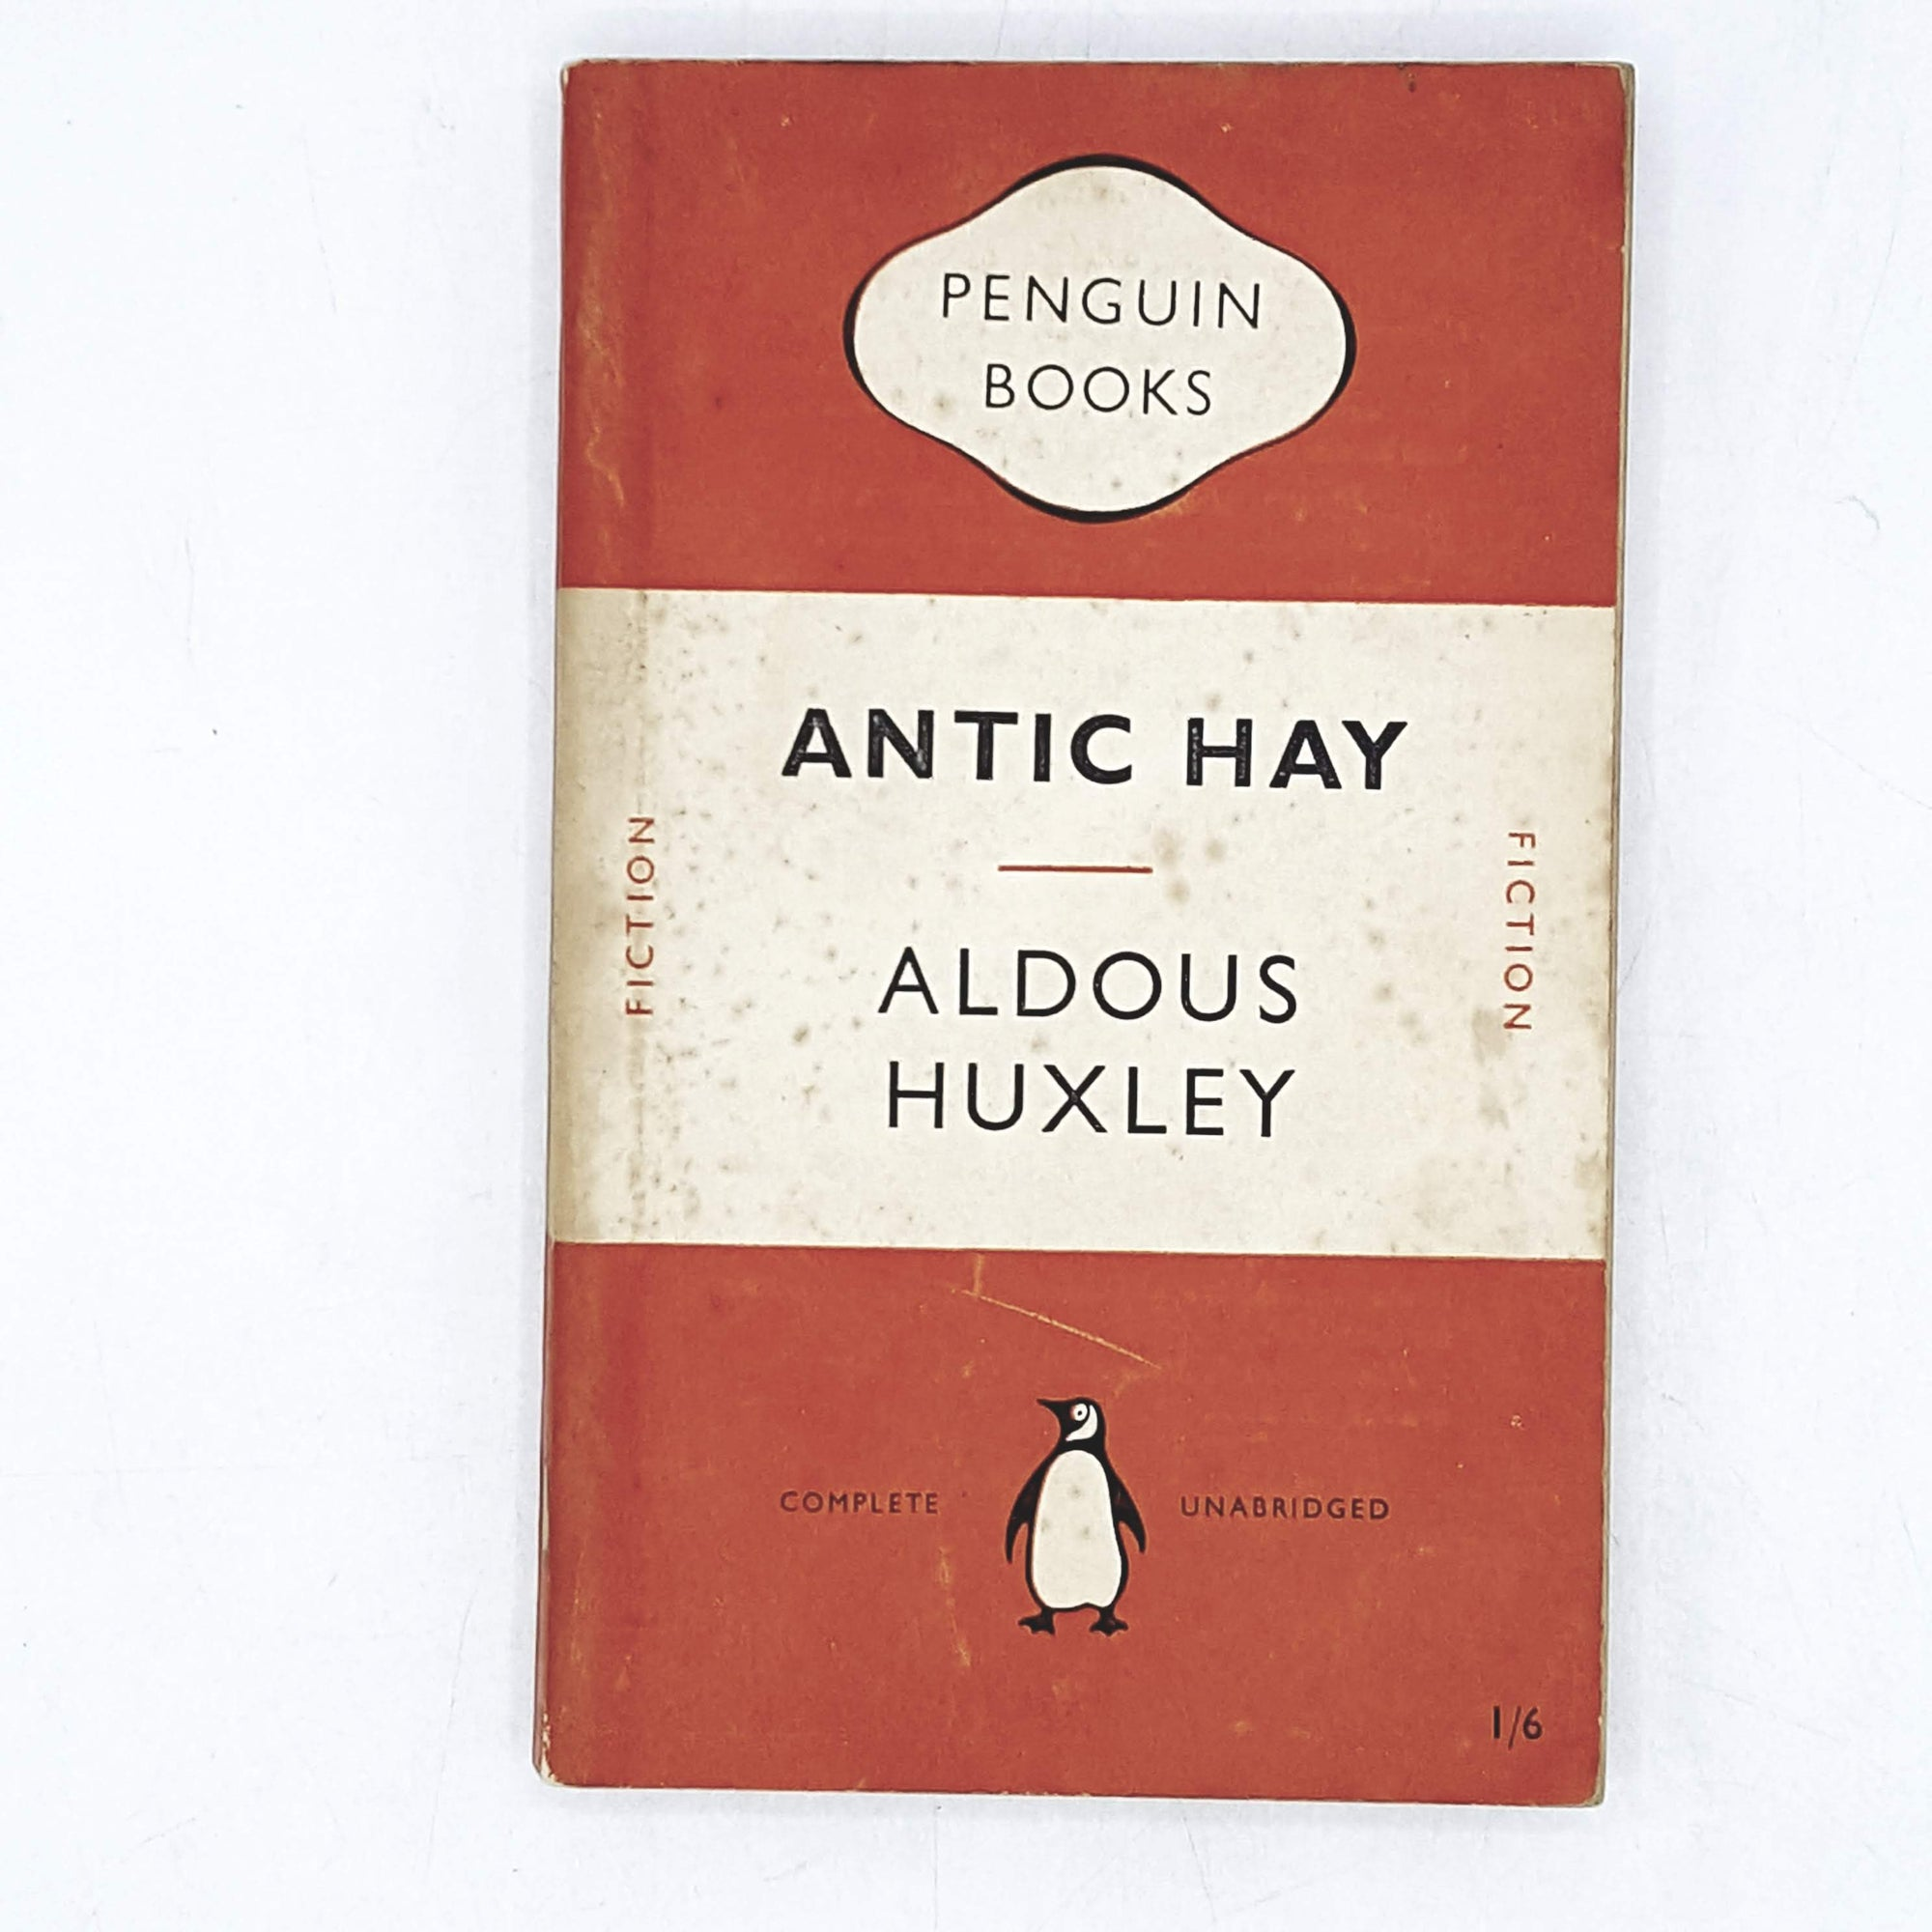 vintage-penguin-antic-hay-by-aldous-huxley-1950-orange-classic-literature-country-house-library